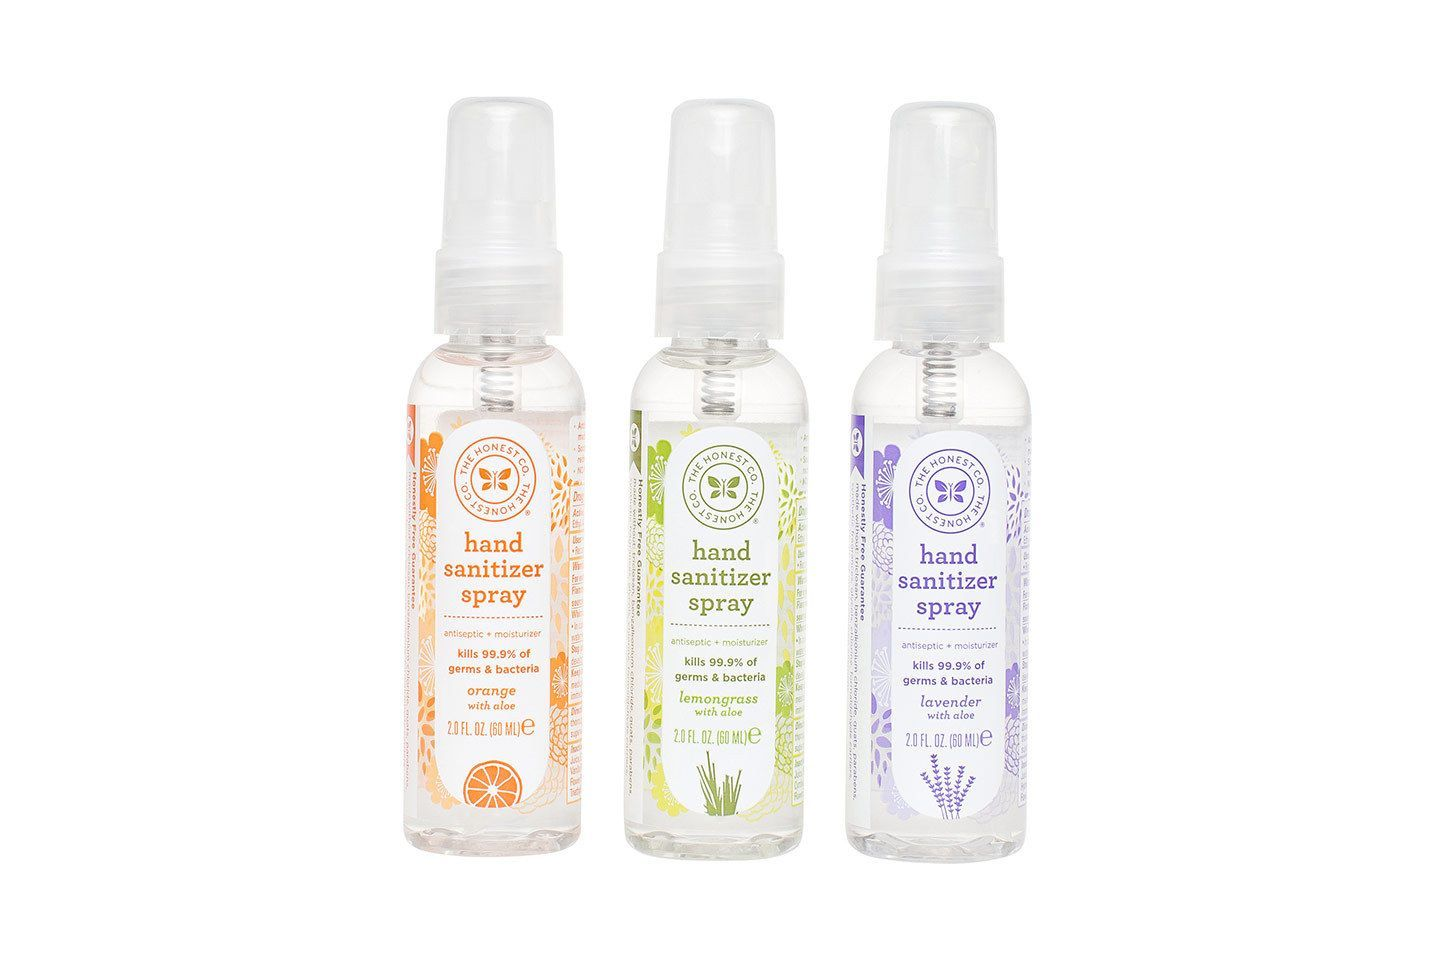 Hand Sanitizer Spray Hand Sanitizer Spray Moisturizer